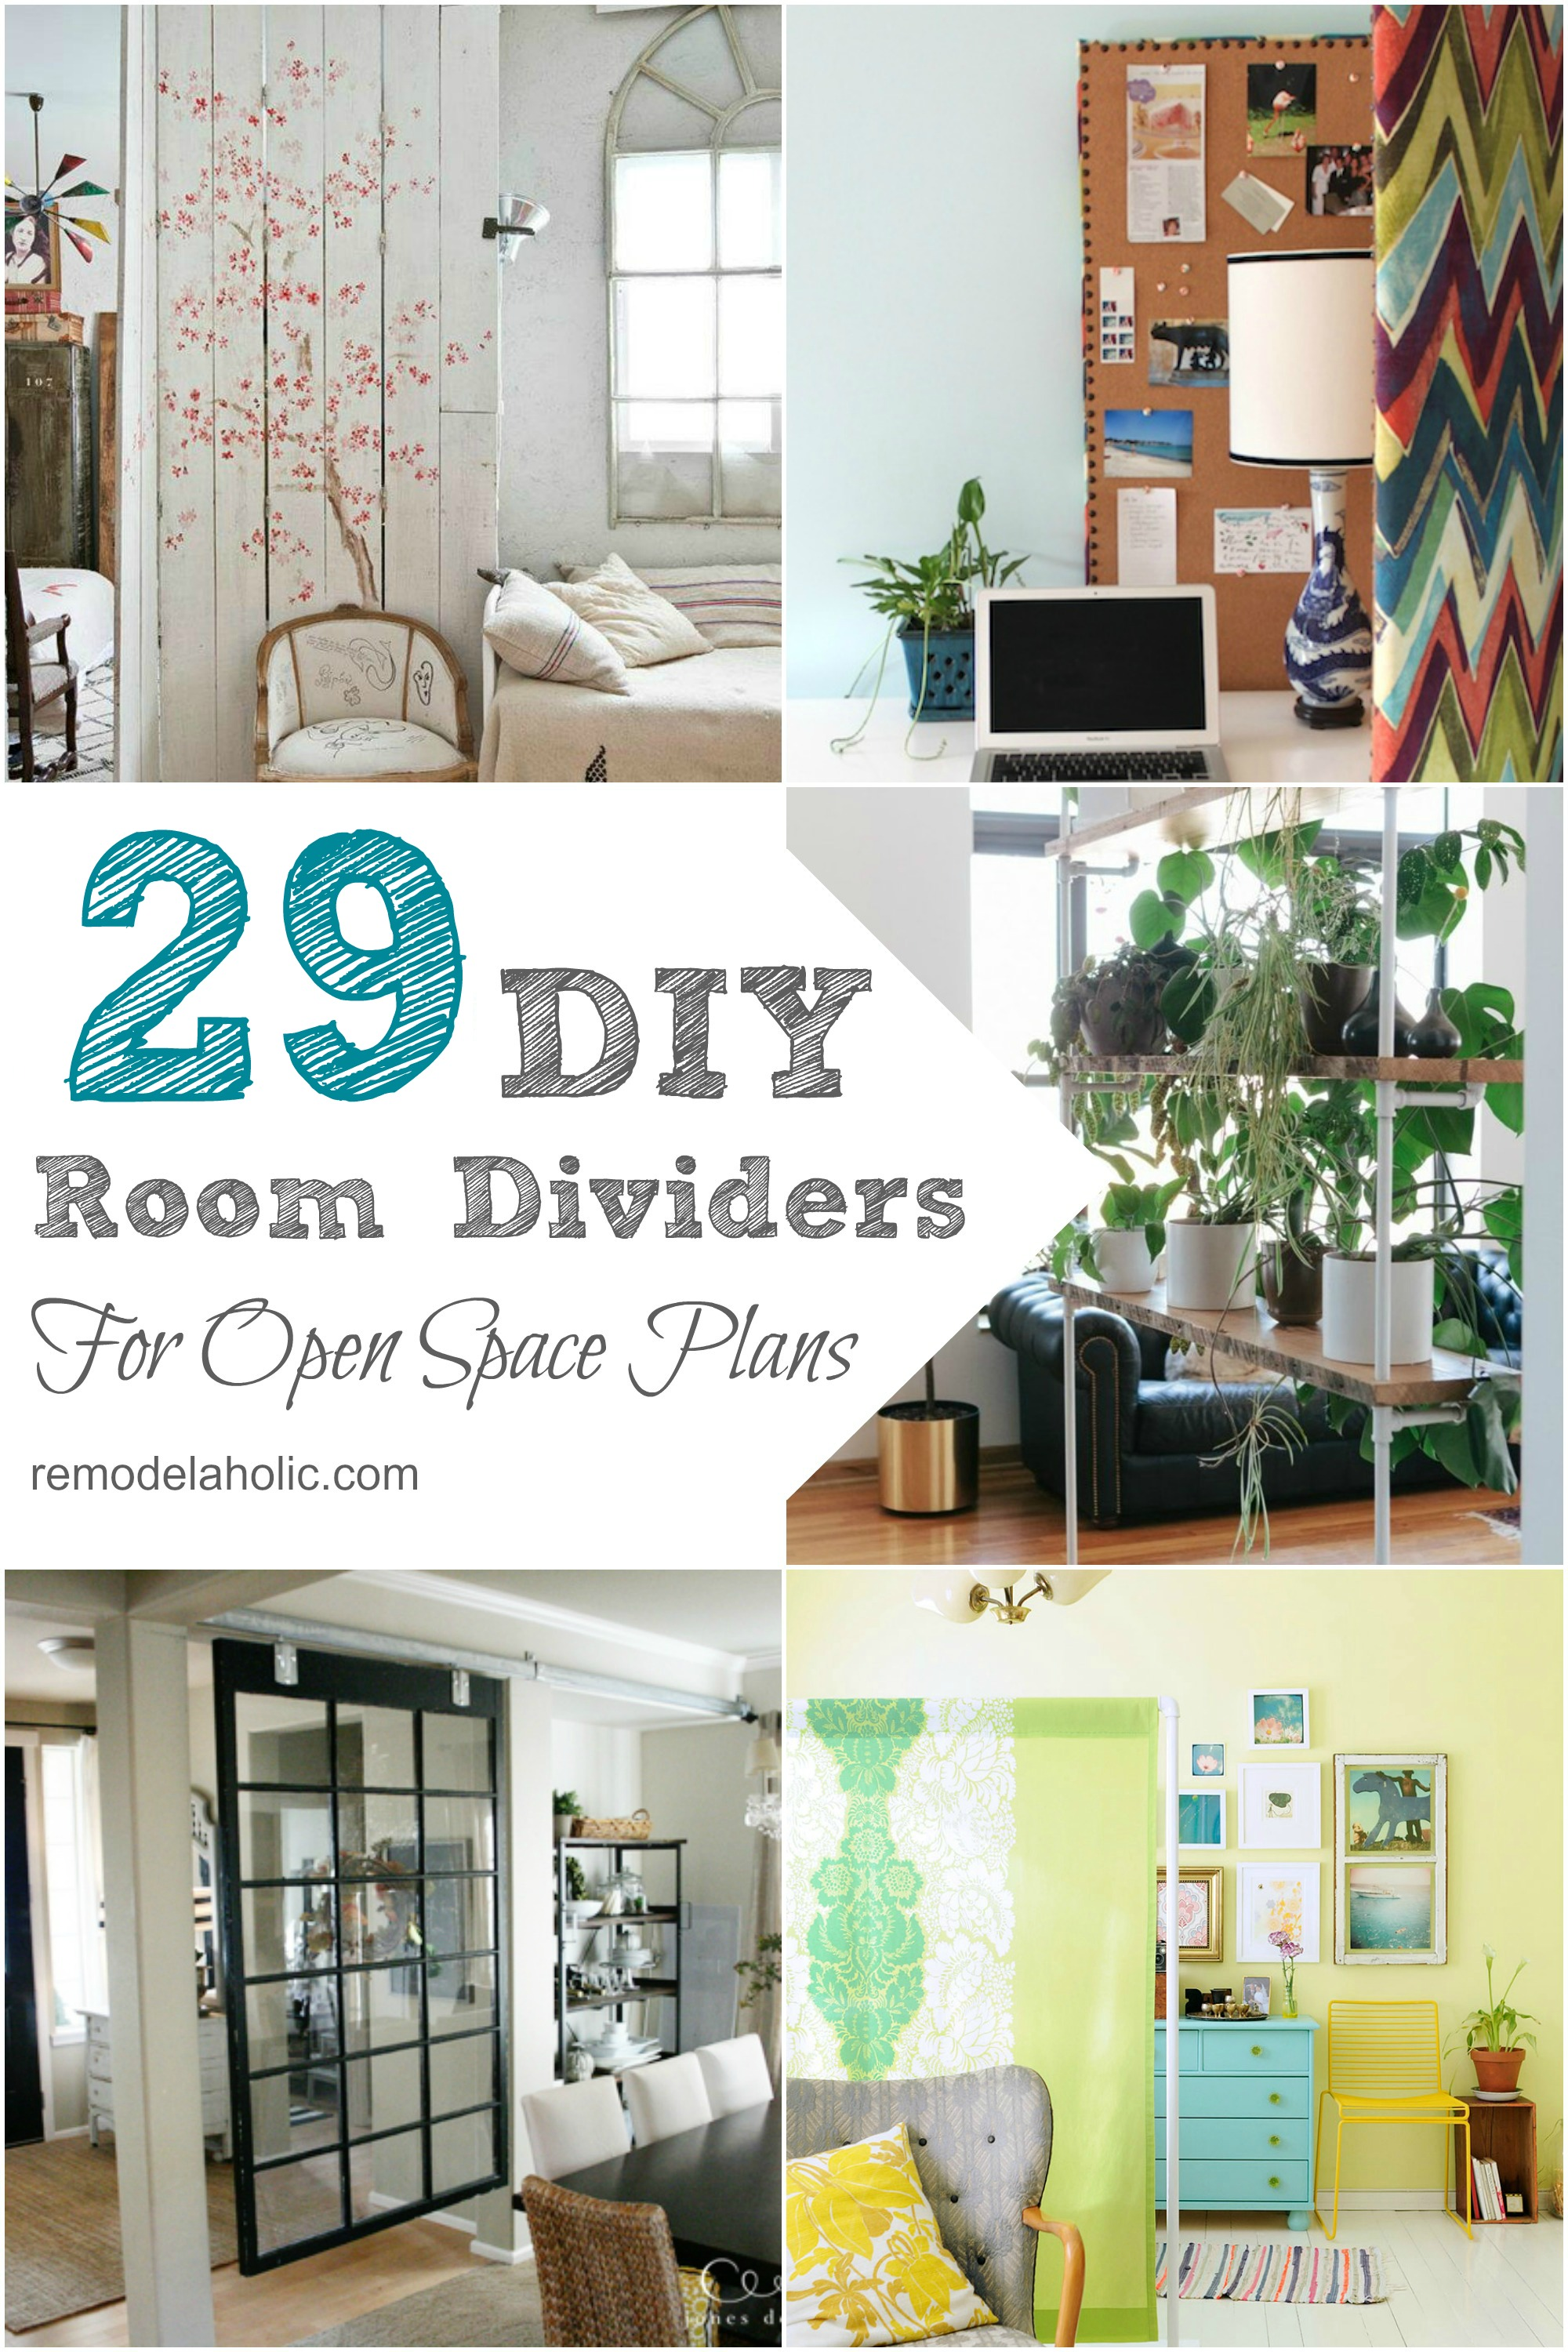 You can create new spaces in your home by building a room divider or two.